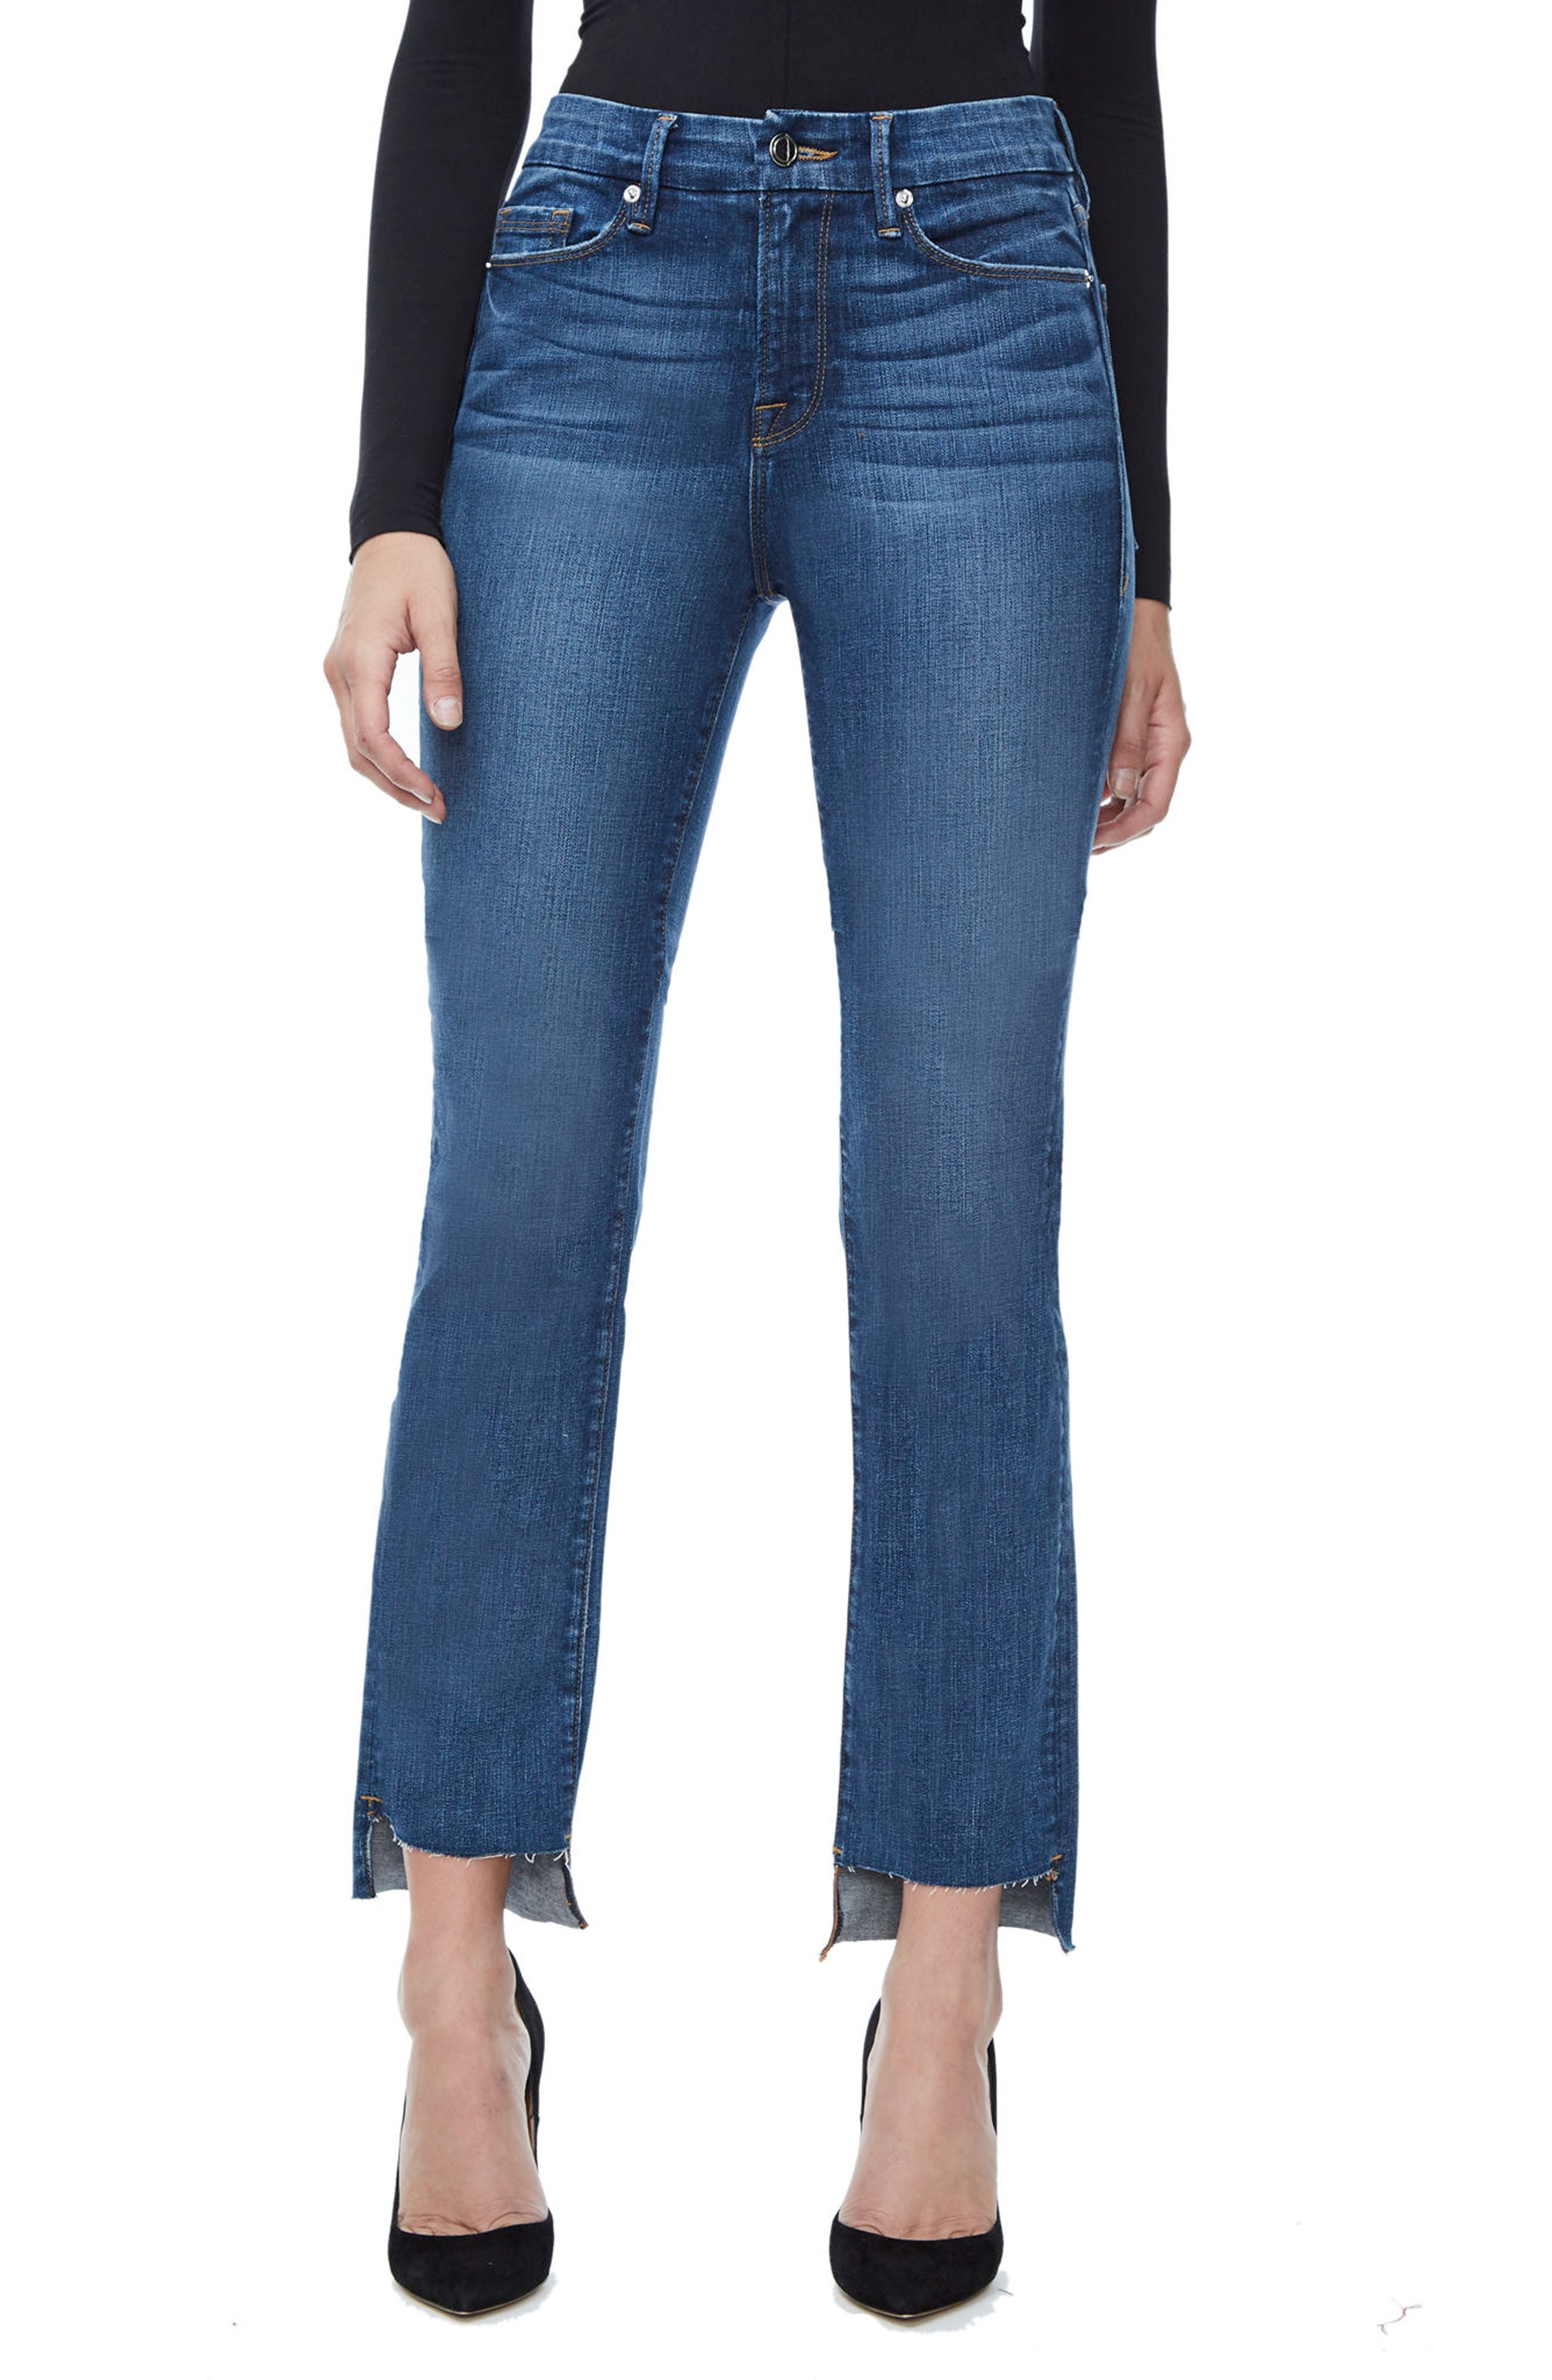 Main Image - Good American Good Straight Raw Hem High Waist Straight Leg Jeans (Blue 086) (Extended Sizes)